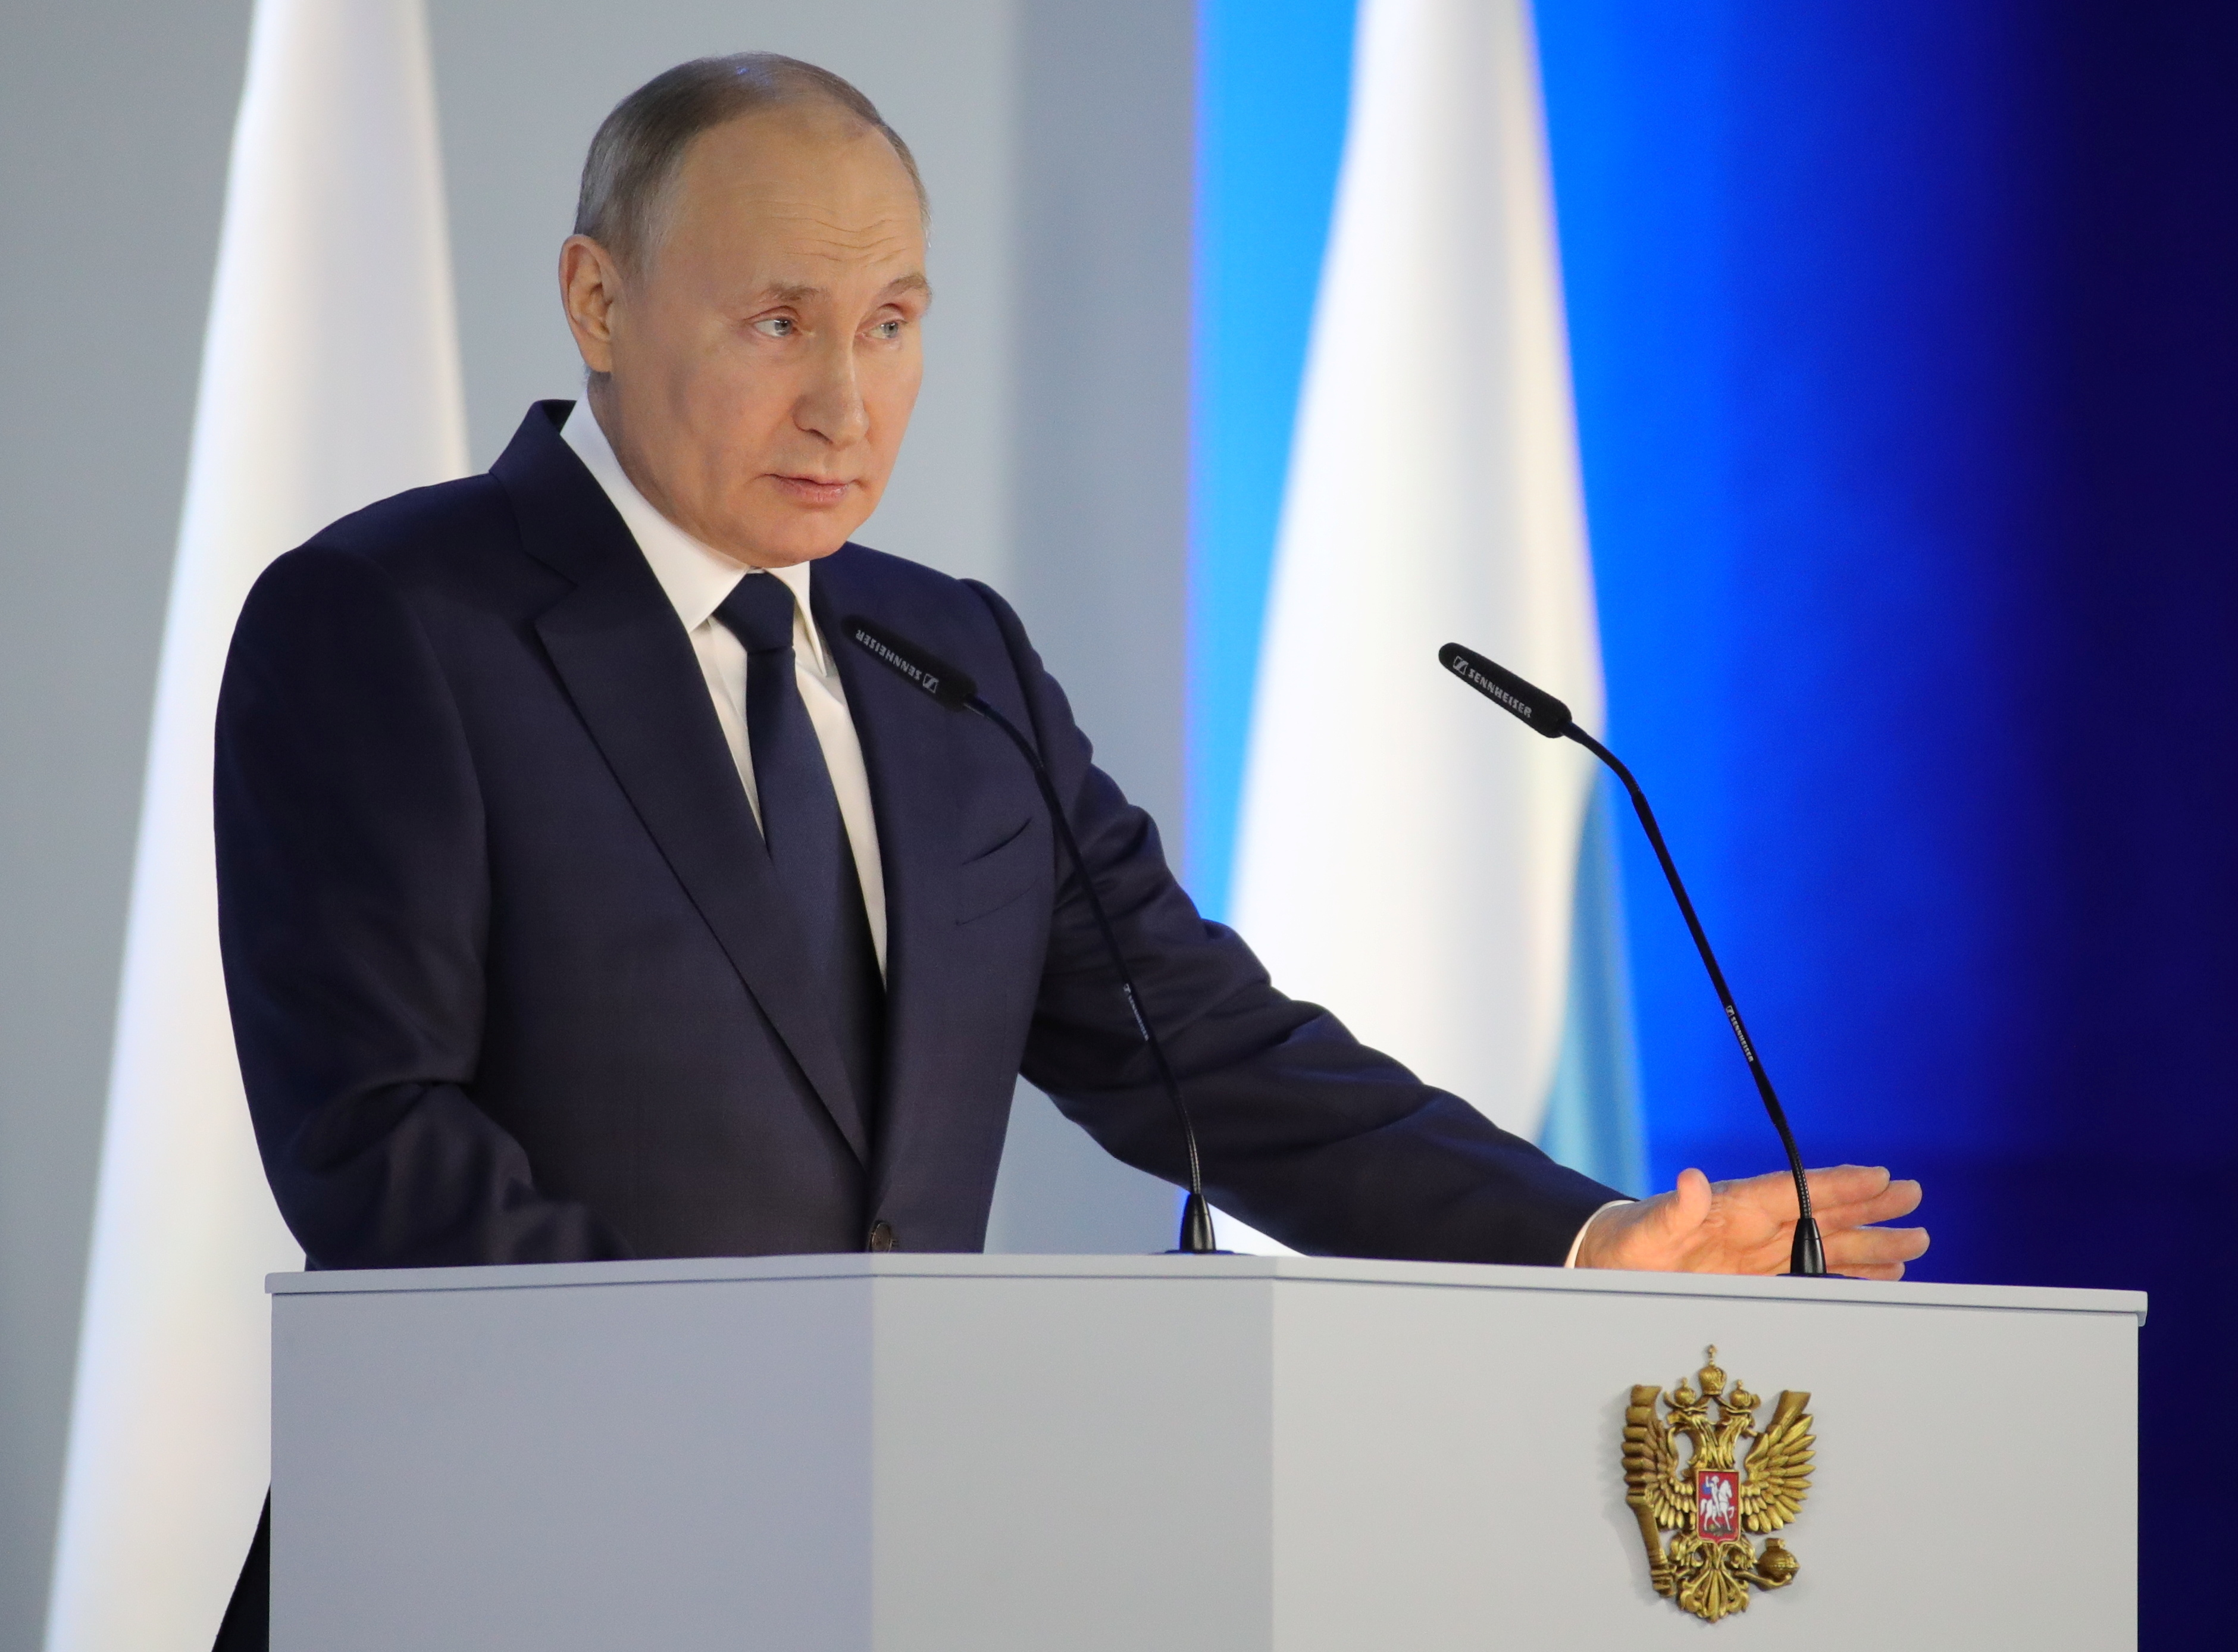 Russian President Vladimir Putin delivers his annual address to the Federal Assembly in Moscow, Russia April 21, 2021. Sputnik/Mikhail Klimentyev/Kremlin via REUTERS